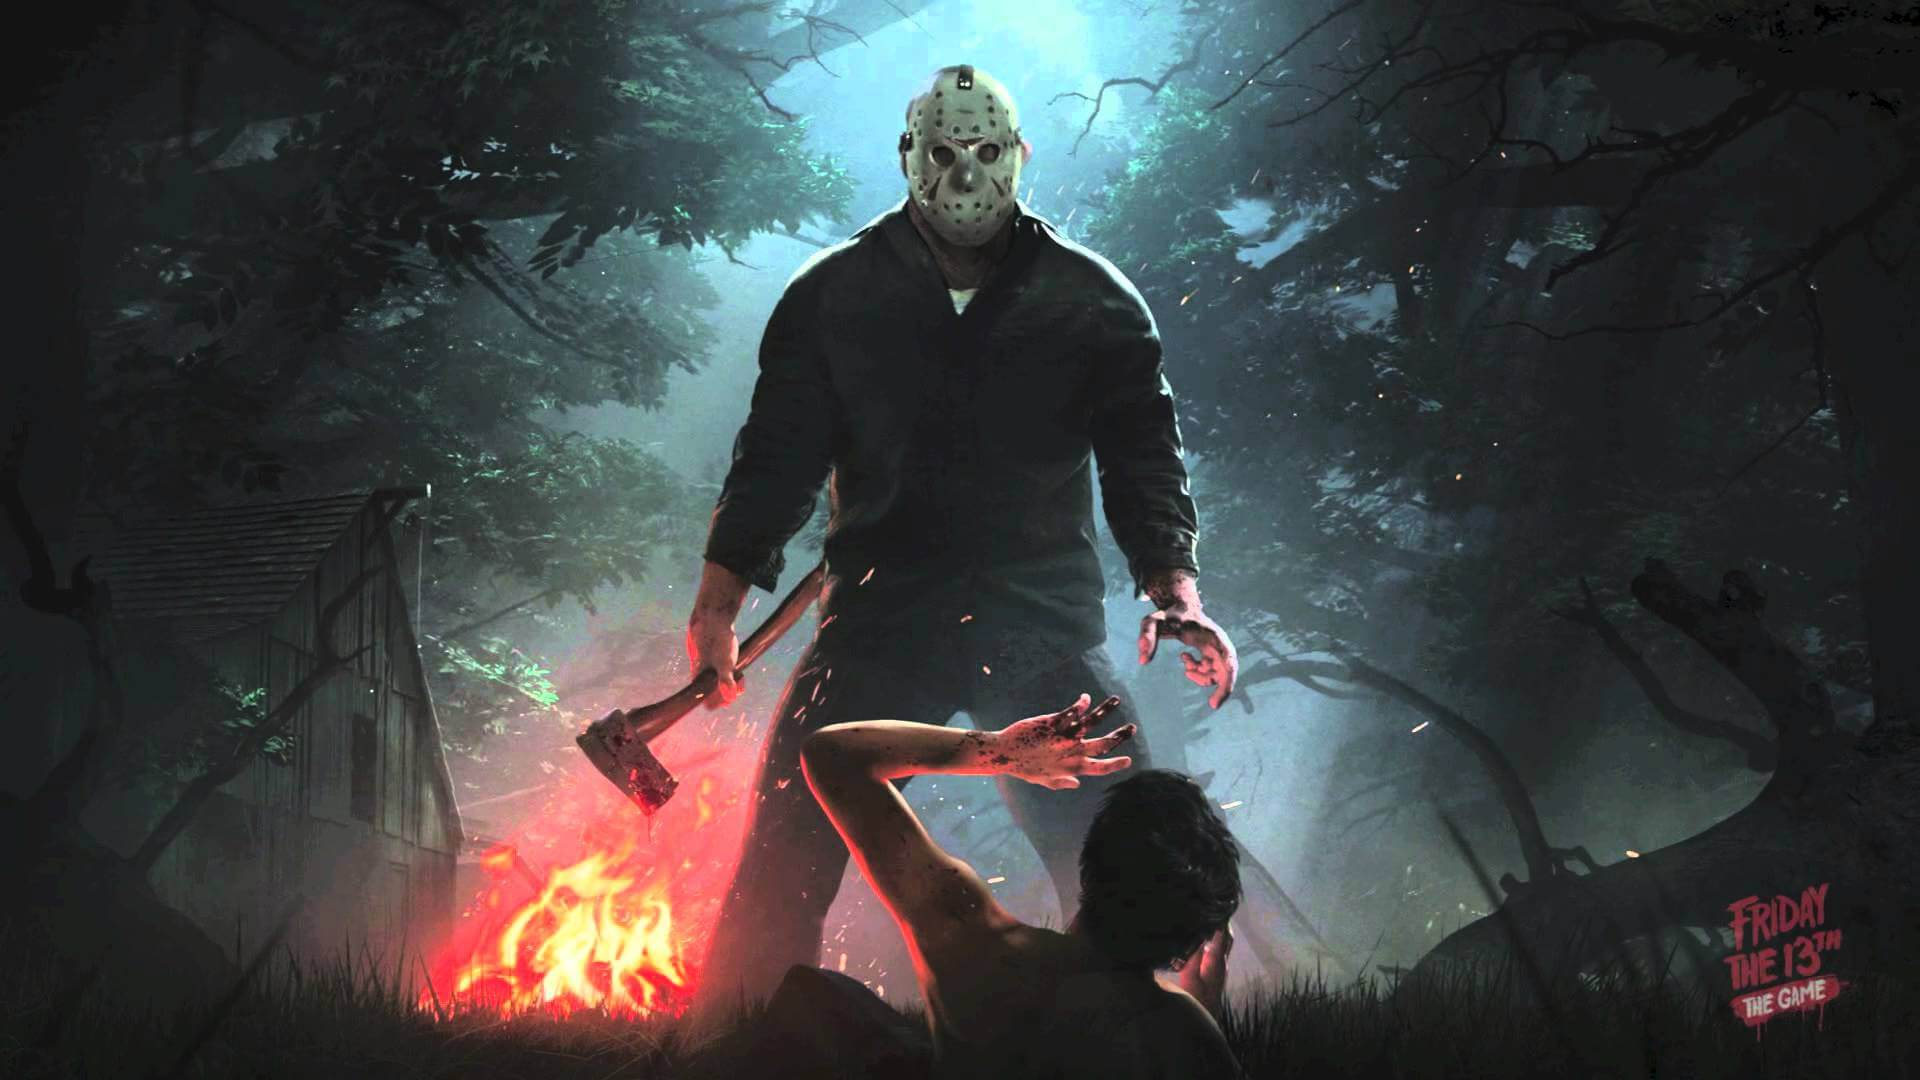 Friday The 13th The Game jason campfire 1 - Friday the 13th: The Game Celebrates Halloween with Costumes!